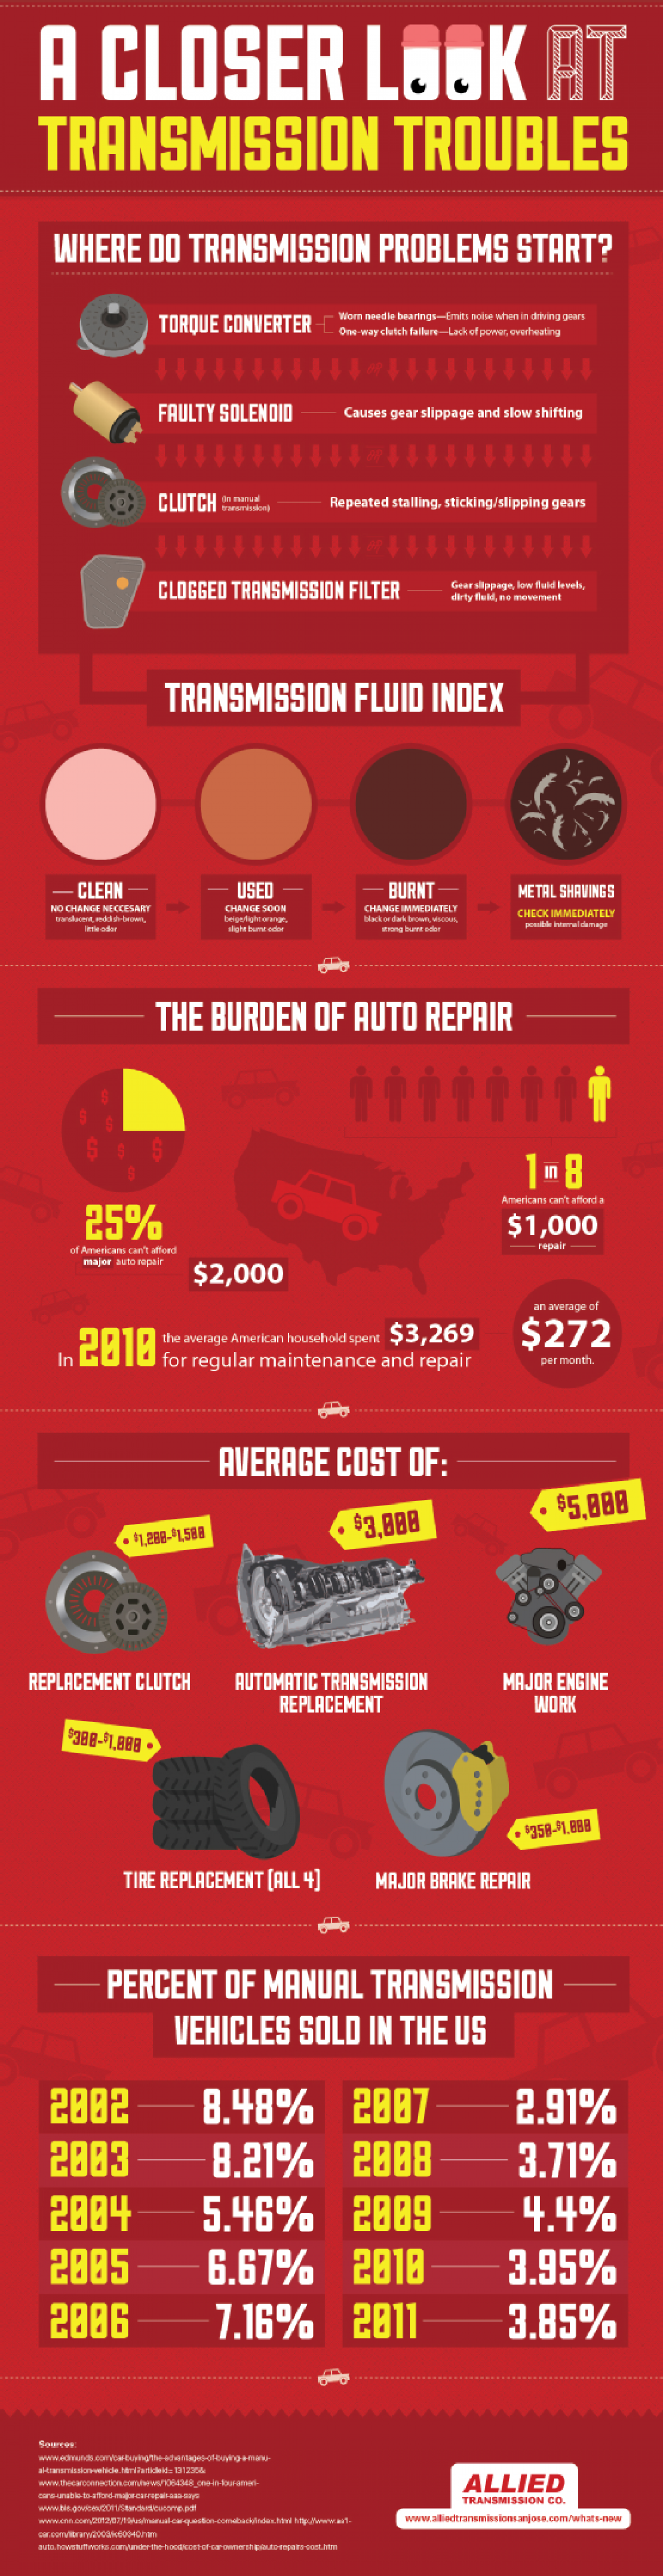 A Closer Look at Transmission Troubles Infographic